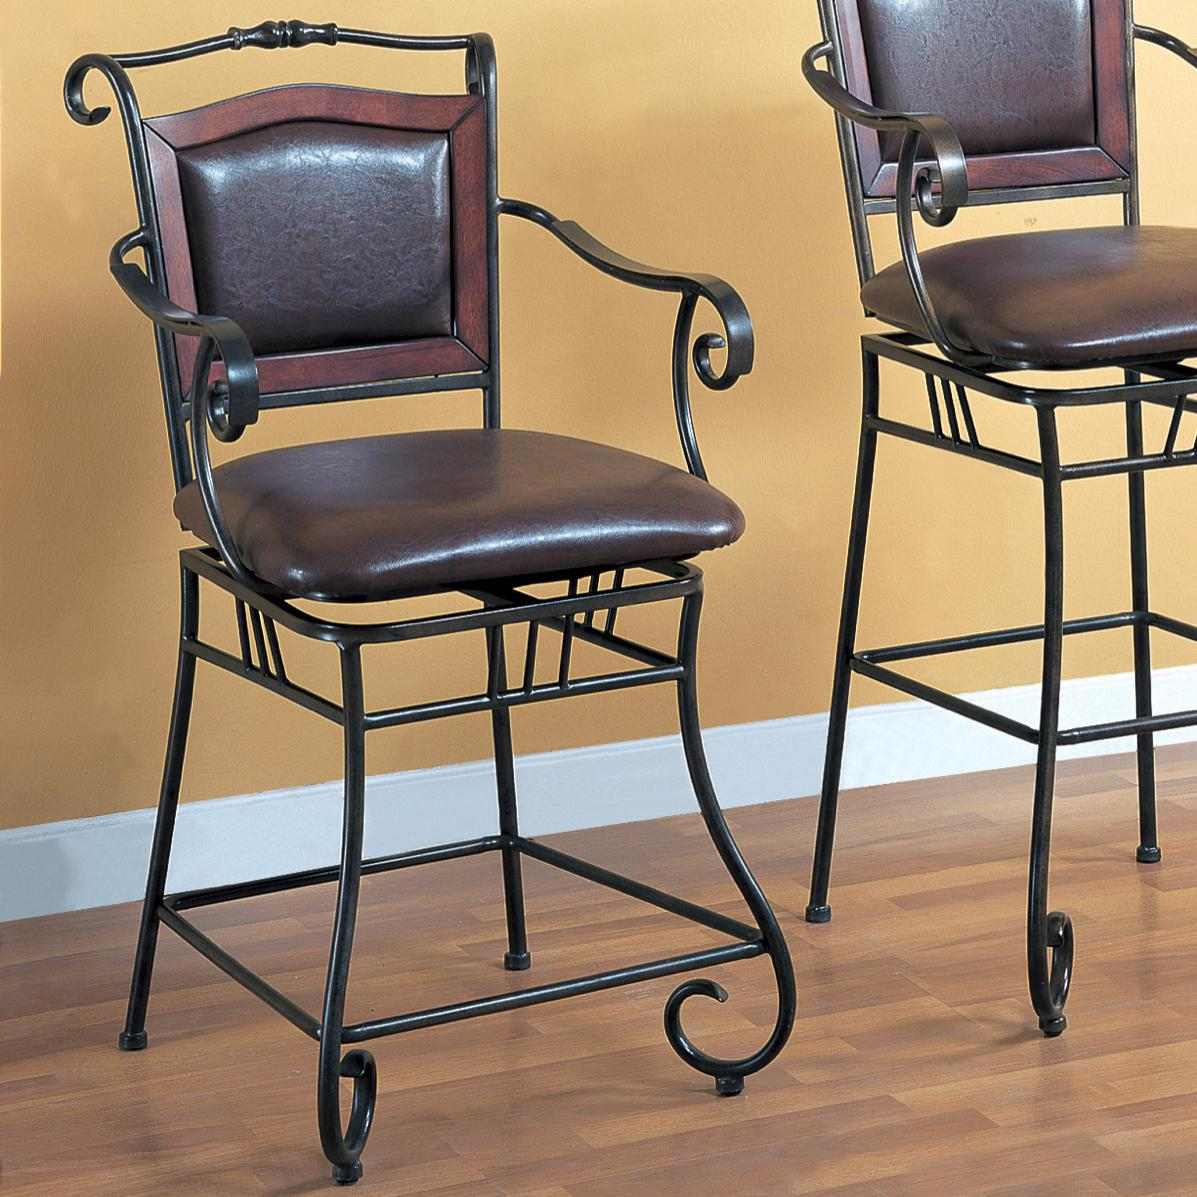 24 dining chairs hanging chair under loft bed coaster and bar stools 100160 quot metal